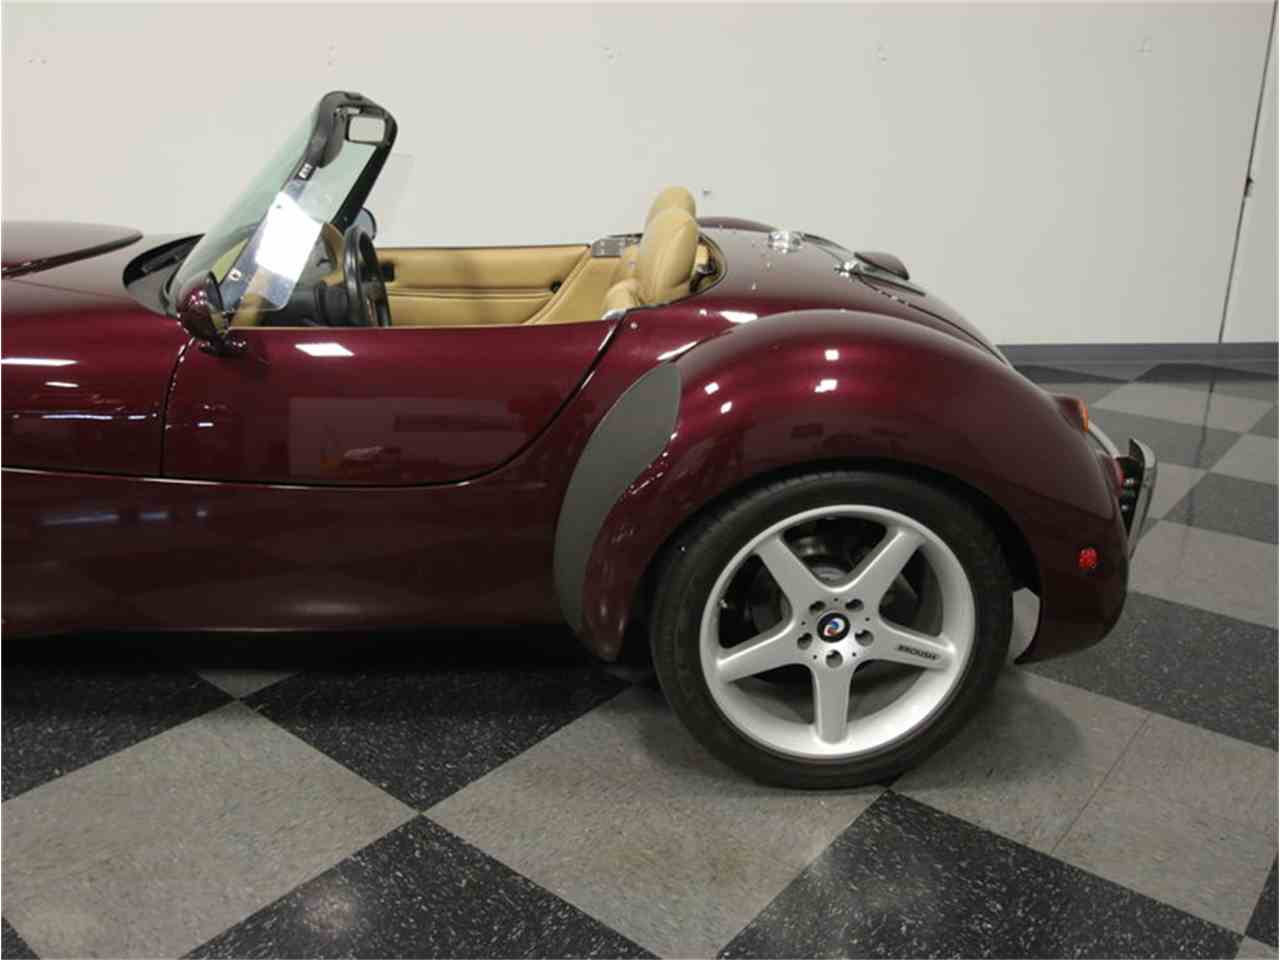 Large Picture of '98 Panoz AIV Roadster Supercharged located in Georgia - $41,995.00 - JPDH